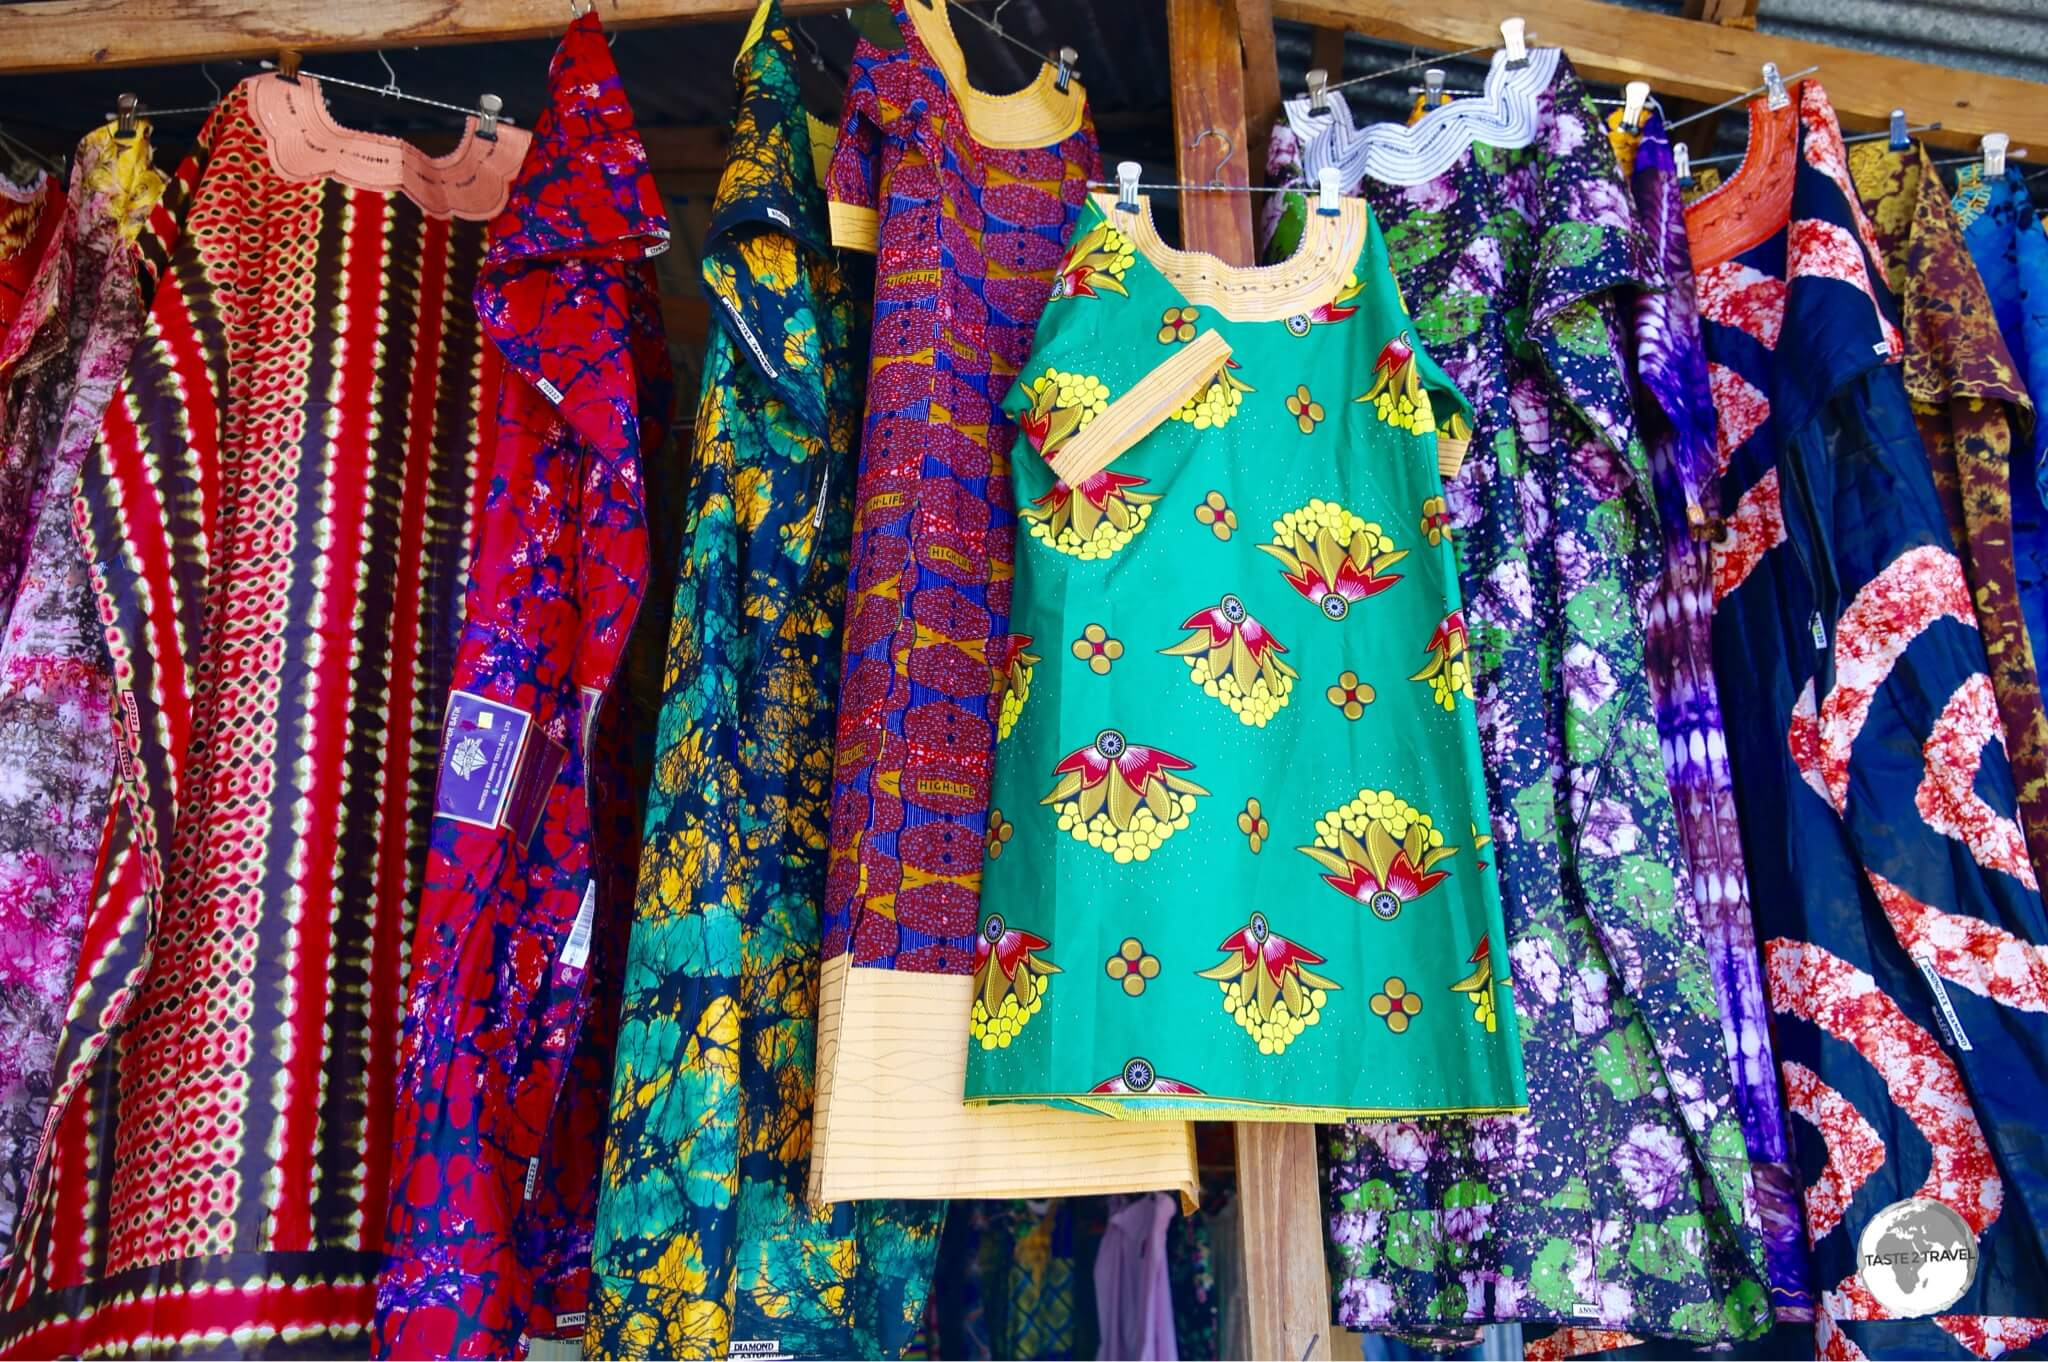 Like their African sisters, the Mahorais woman wear colourful clothing made from African wax printed fabrics.